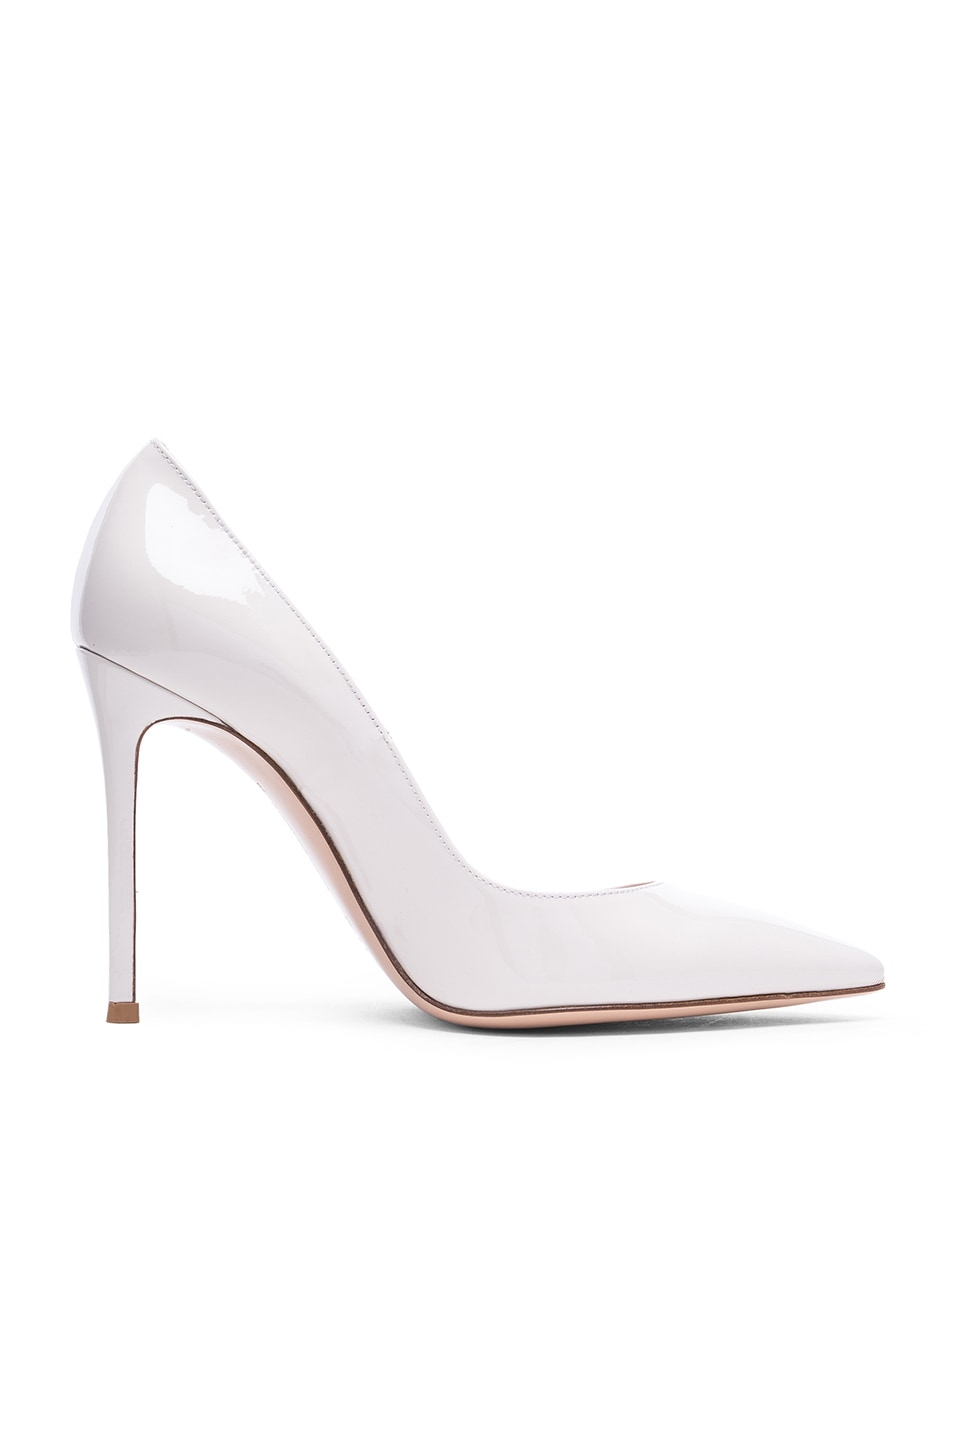 Image 1 of Gianvito Rossi Patent Leather Gianvito Pumps in Off White